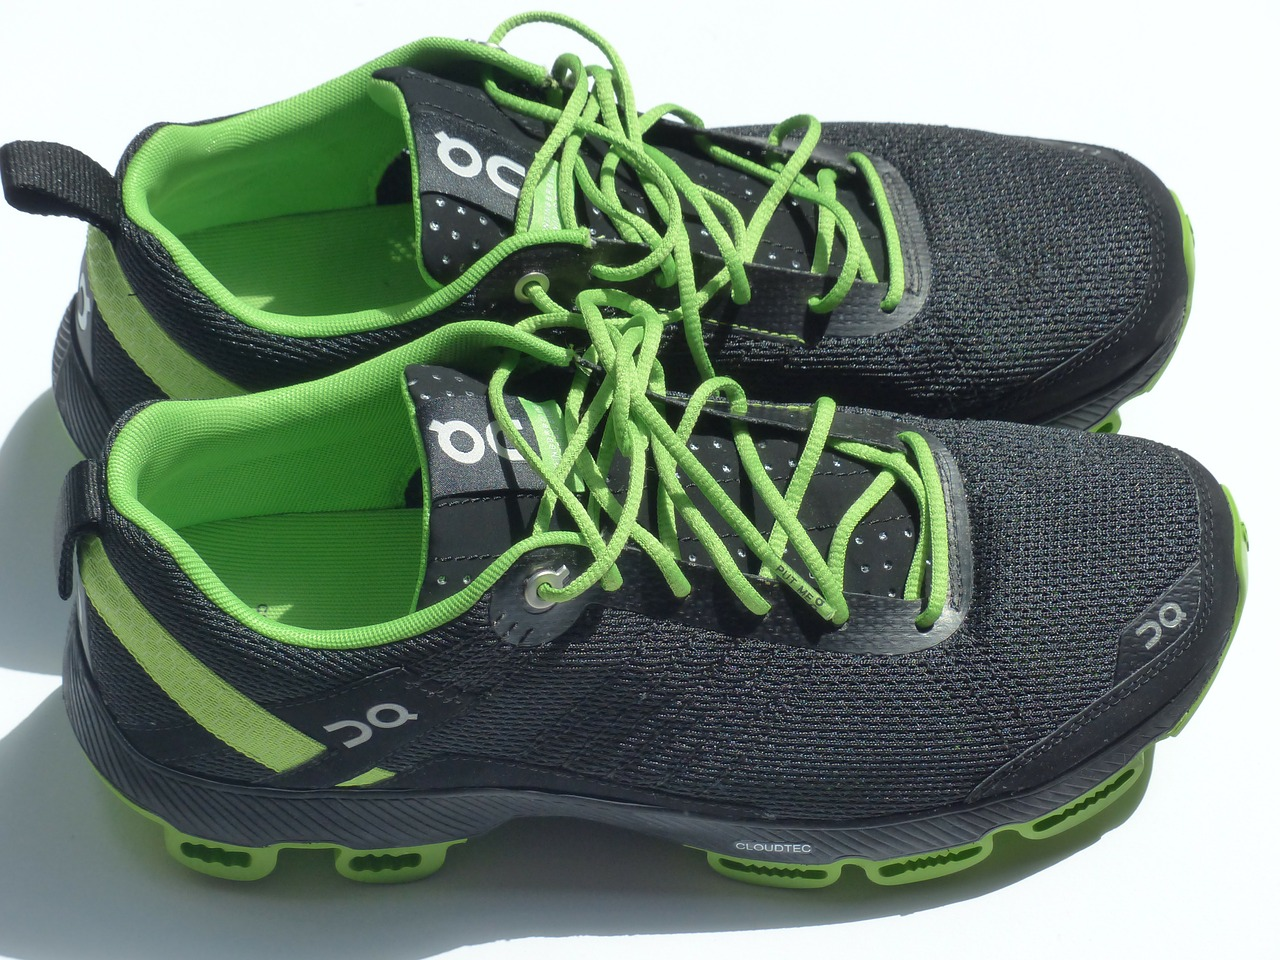 sports shoes running shoes sneakers free photo